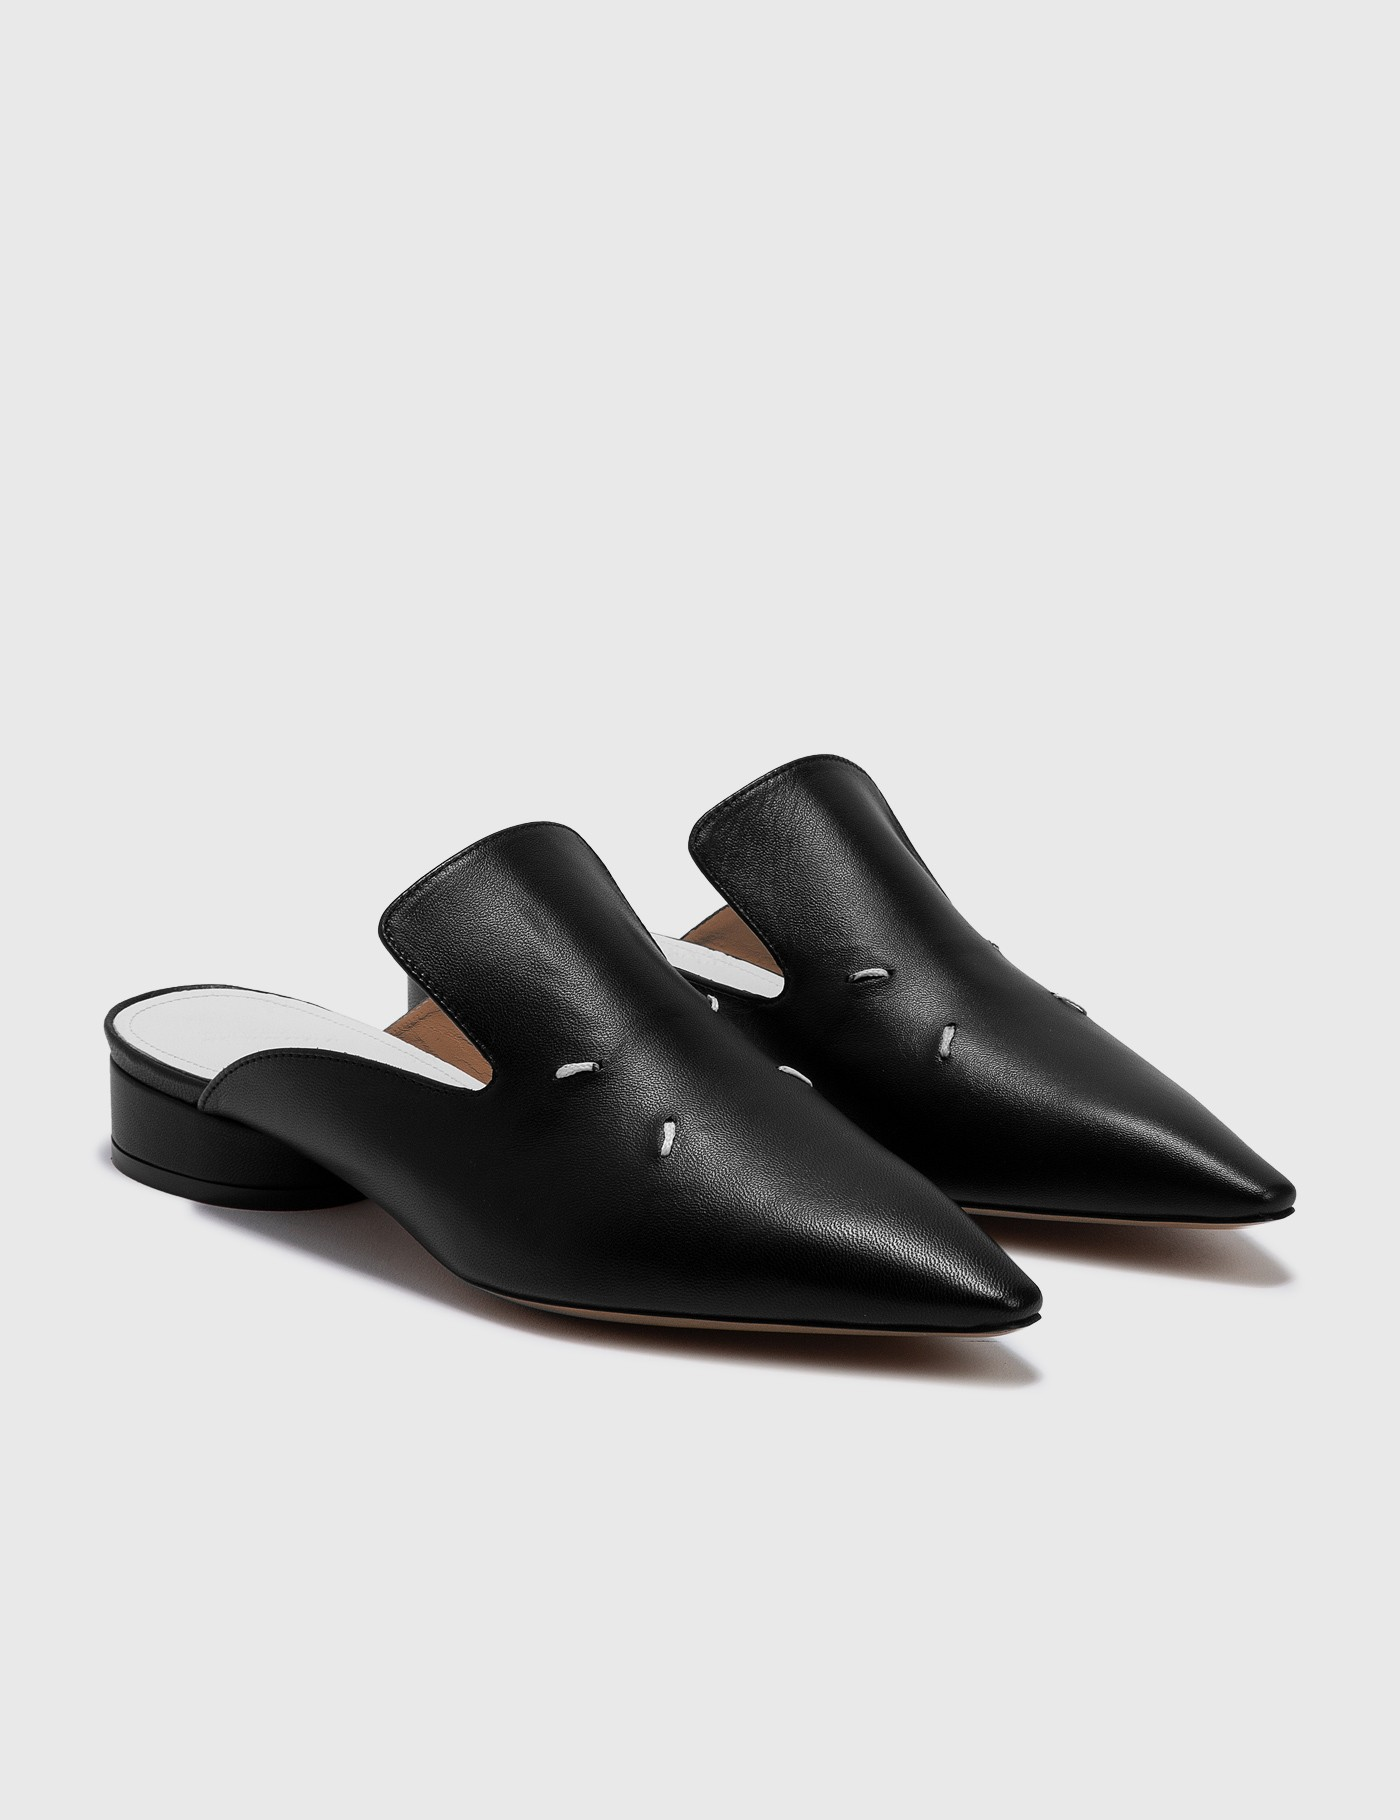 MAISON MARGIELA LEATHER MULES